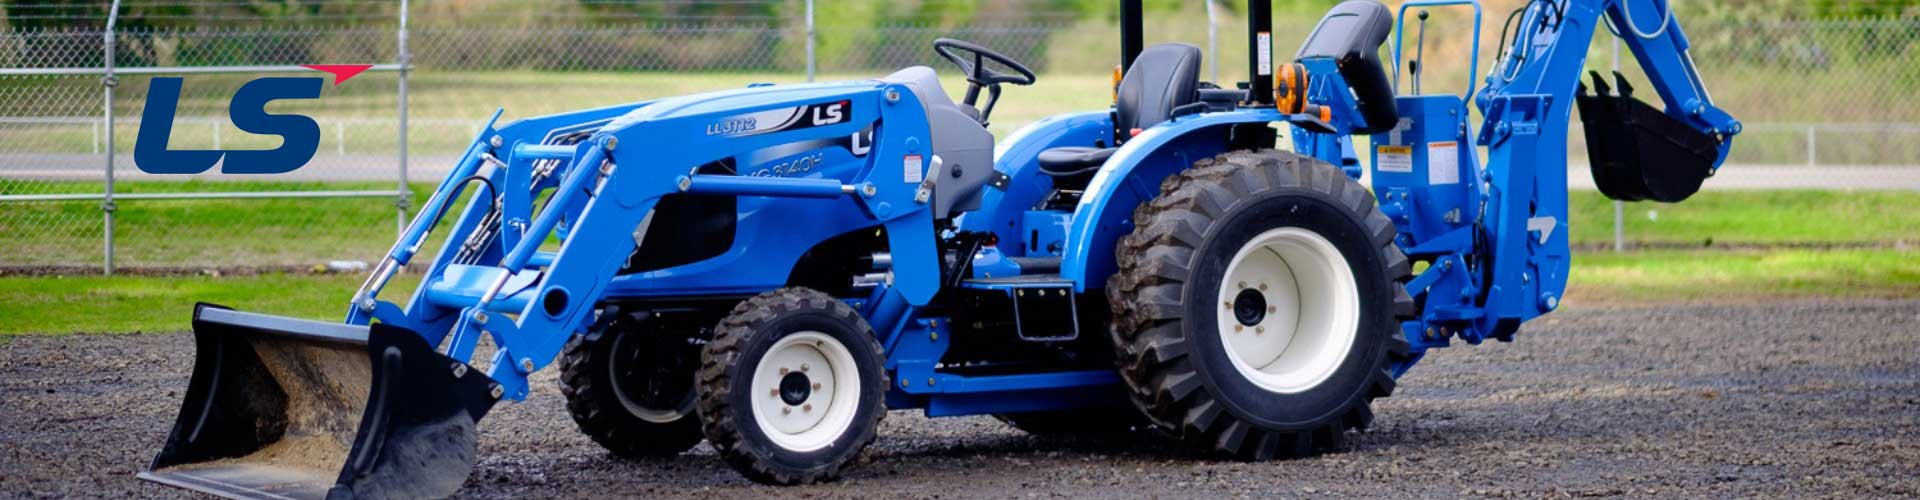 Equipment Sales in Southern Ohio & Northern Kentucky